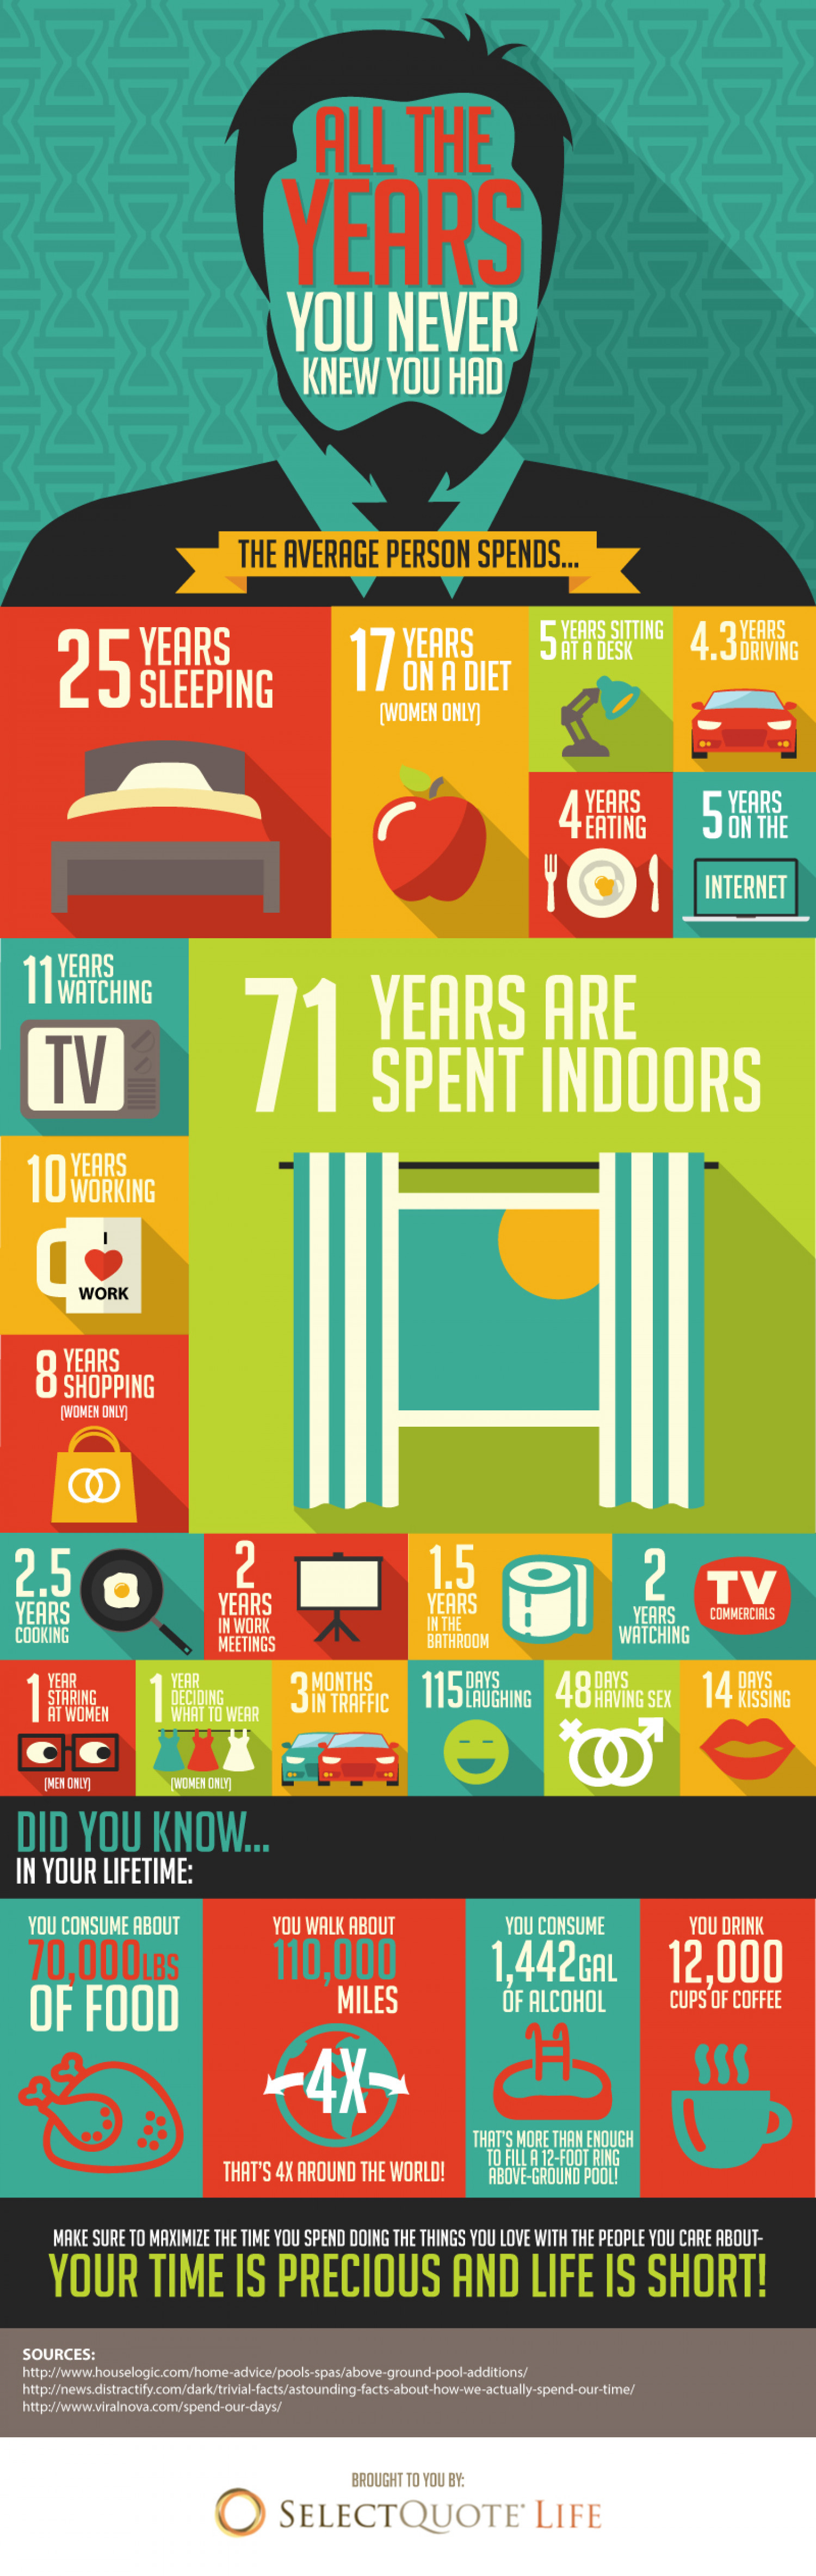 All the Years You Never Knew You Had Infographic